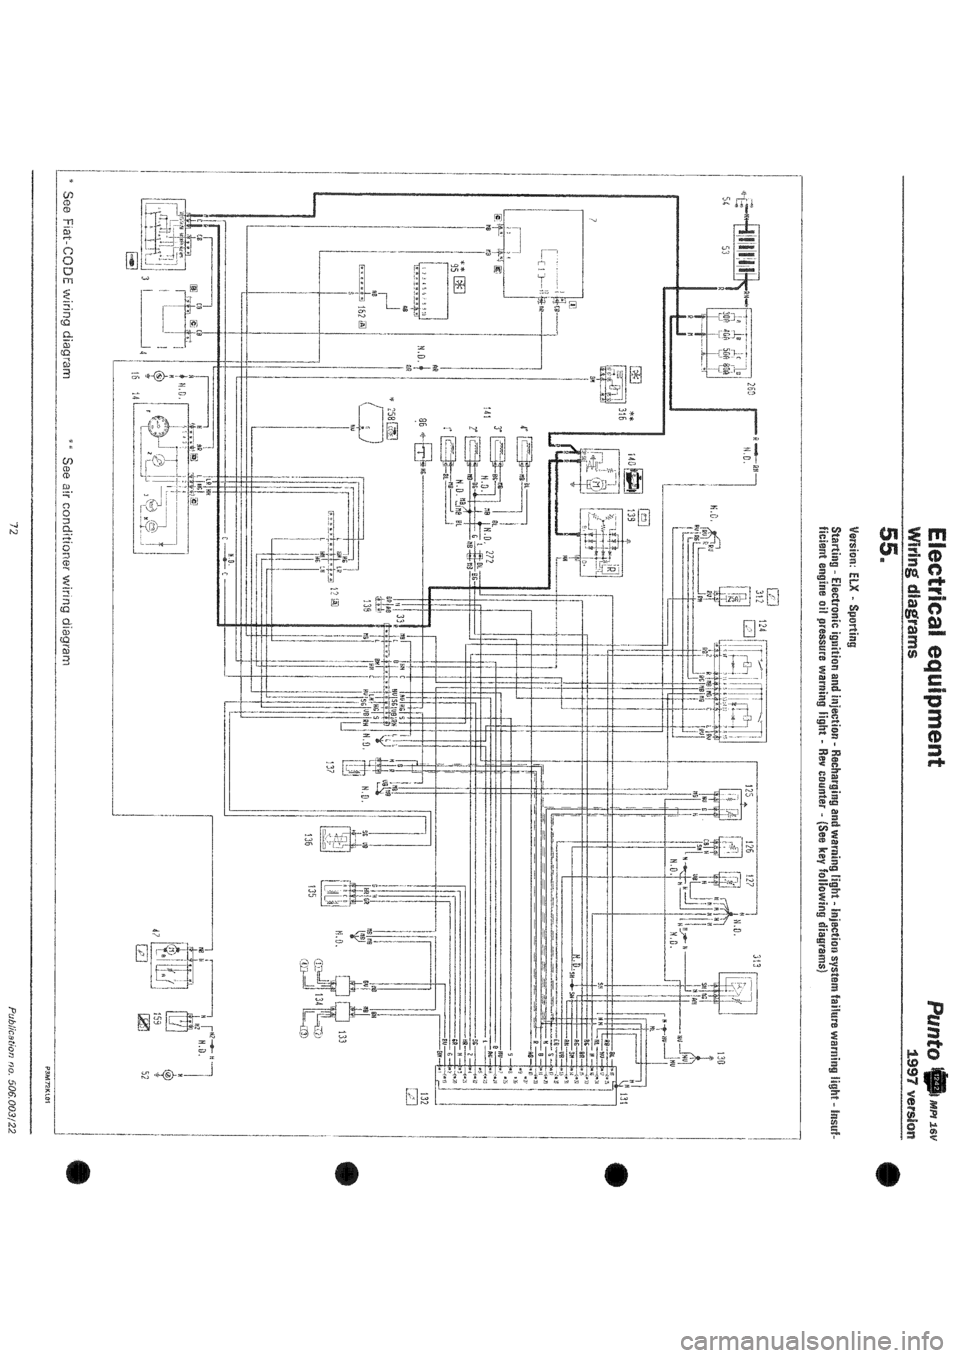 FIAT PUNTO 1997 176 / 1.G Wiring Diagrams User Guide (12